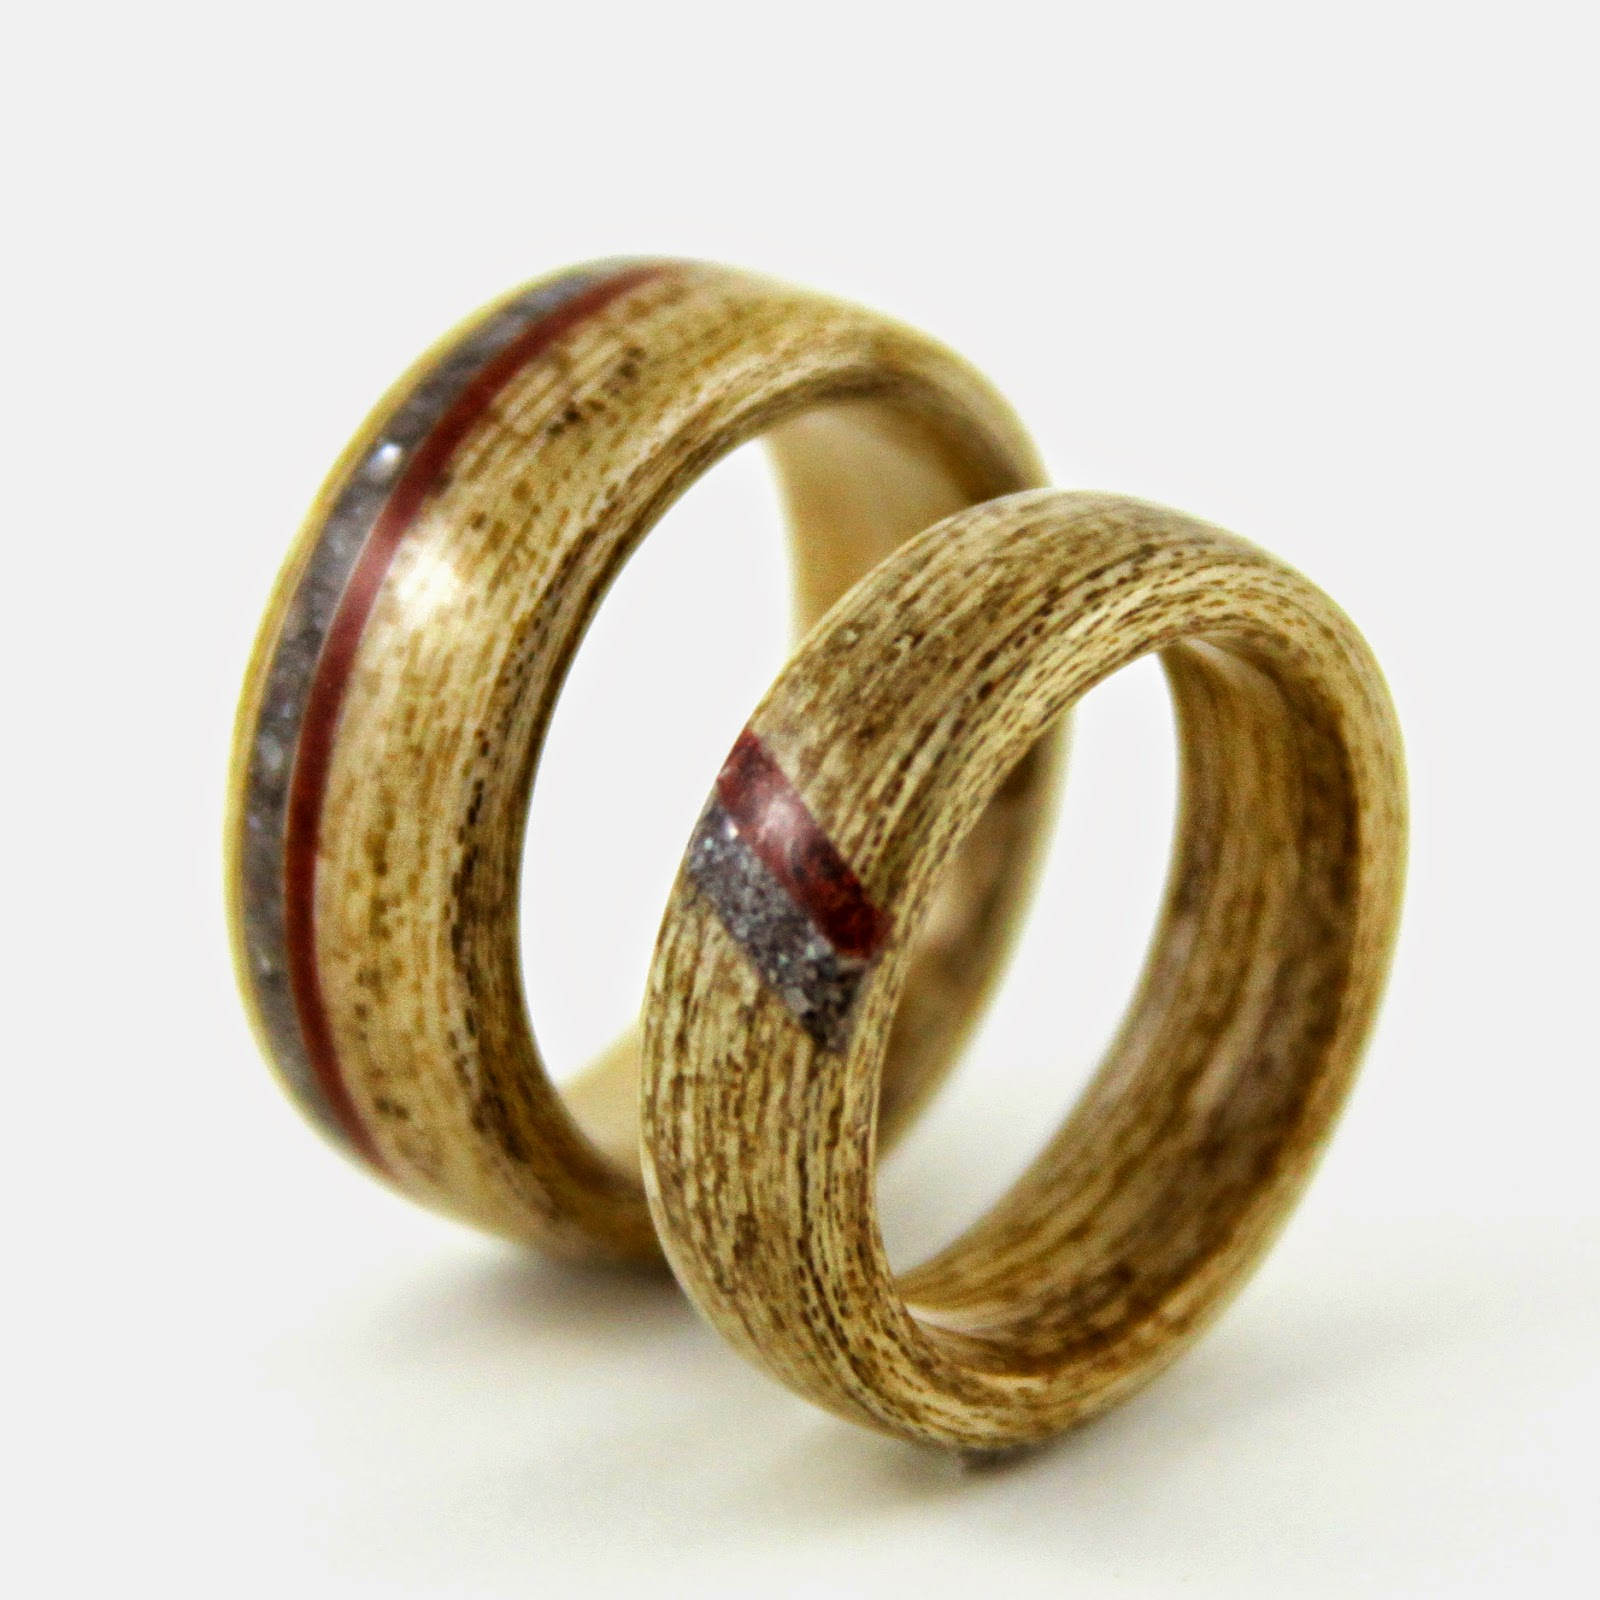 Amazing Gustav Reyes Wooden Wedding Rings